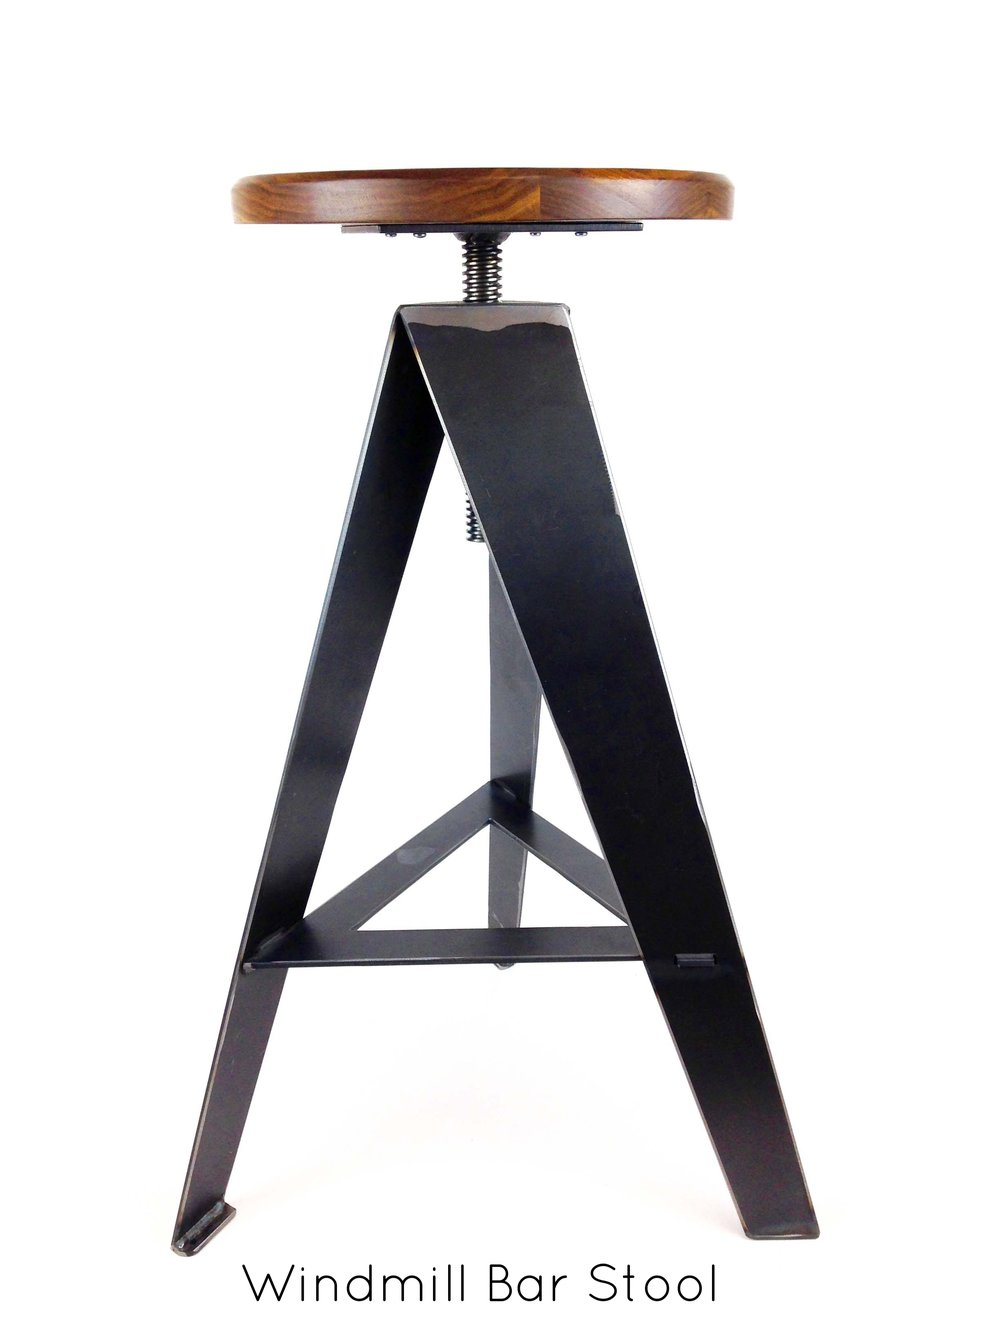 Windmill bar stool